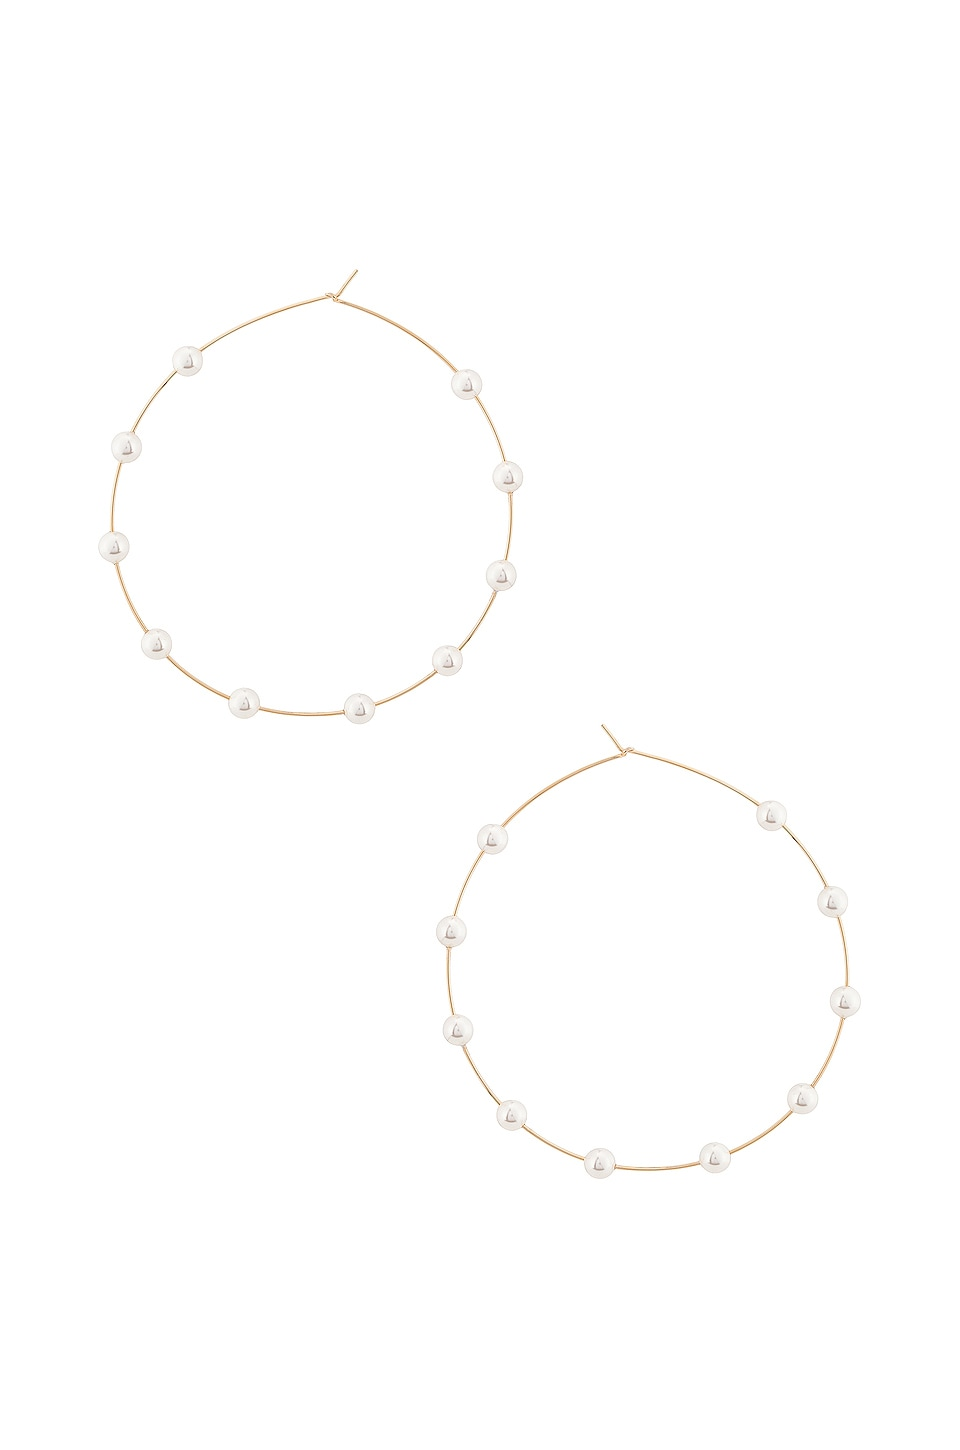 Lili Claspe Molly Hoop in Gold